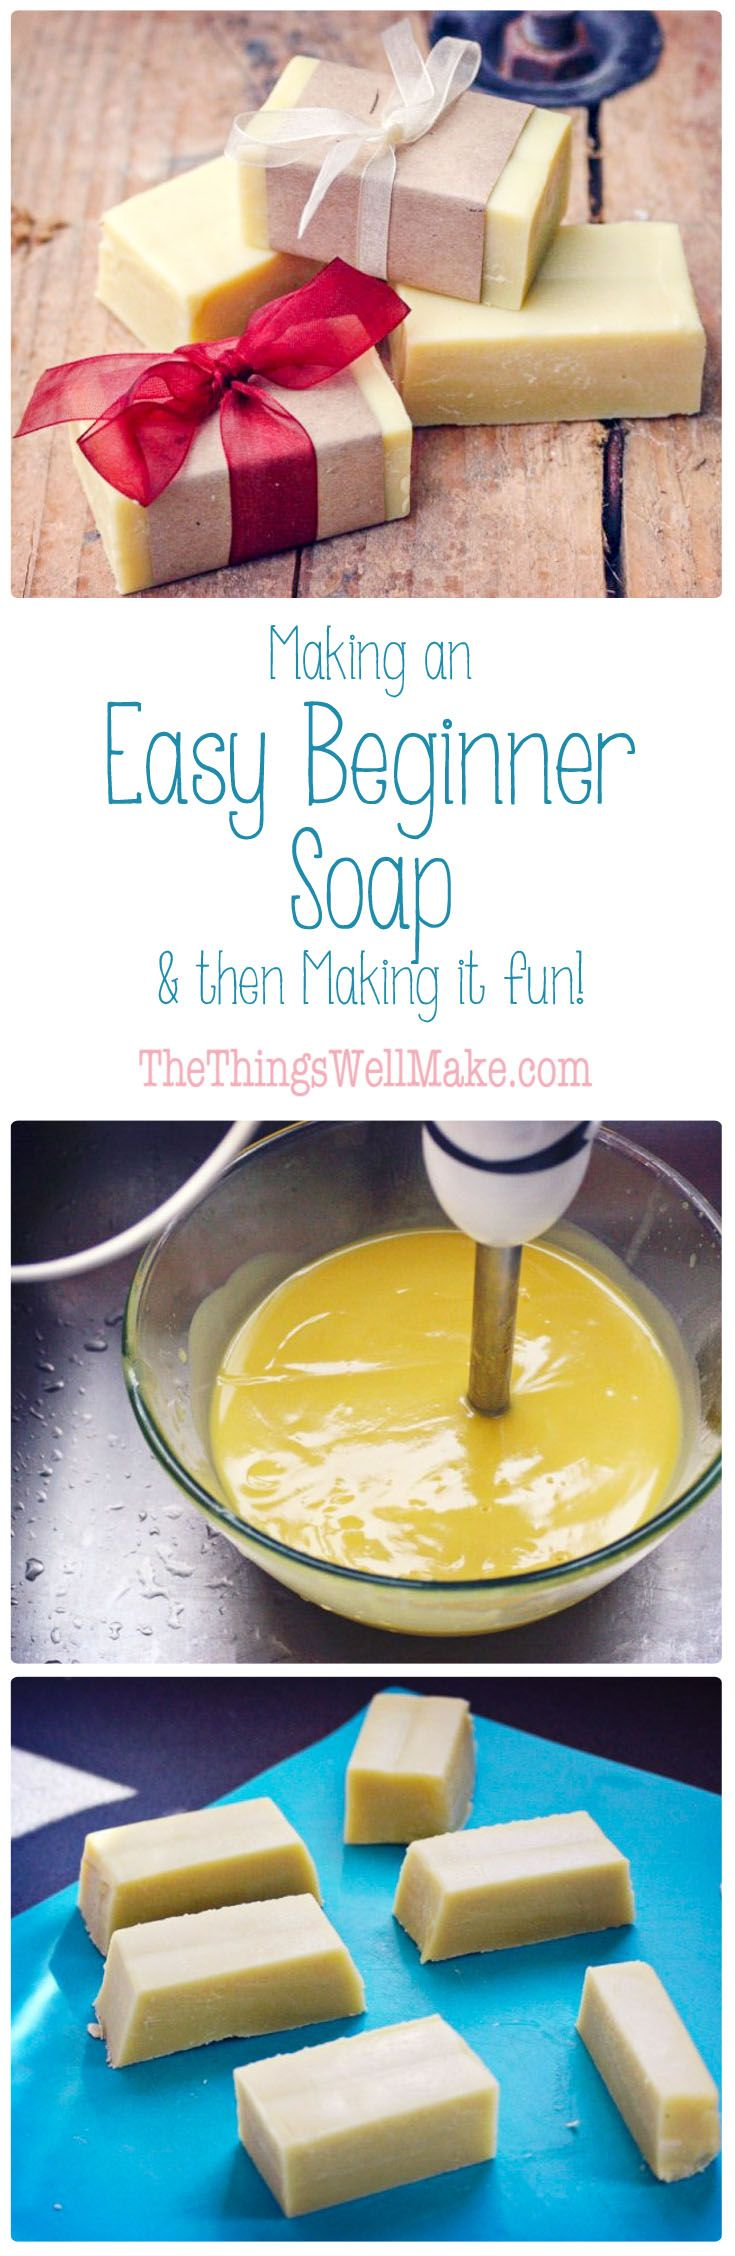 Making soap isn't difficult. Today I'm sharing my quick and easy, basic beginner soap recipe with fun ideas for personalizing it by adding exfoliants, essential oils, etc. (Hobbies To Try Essential Oils)